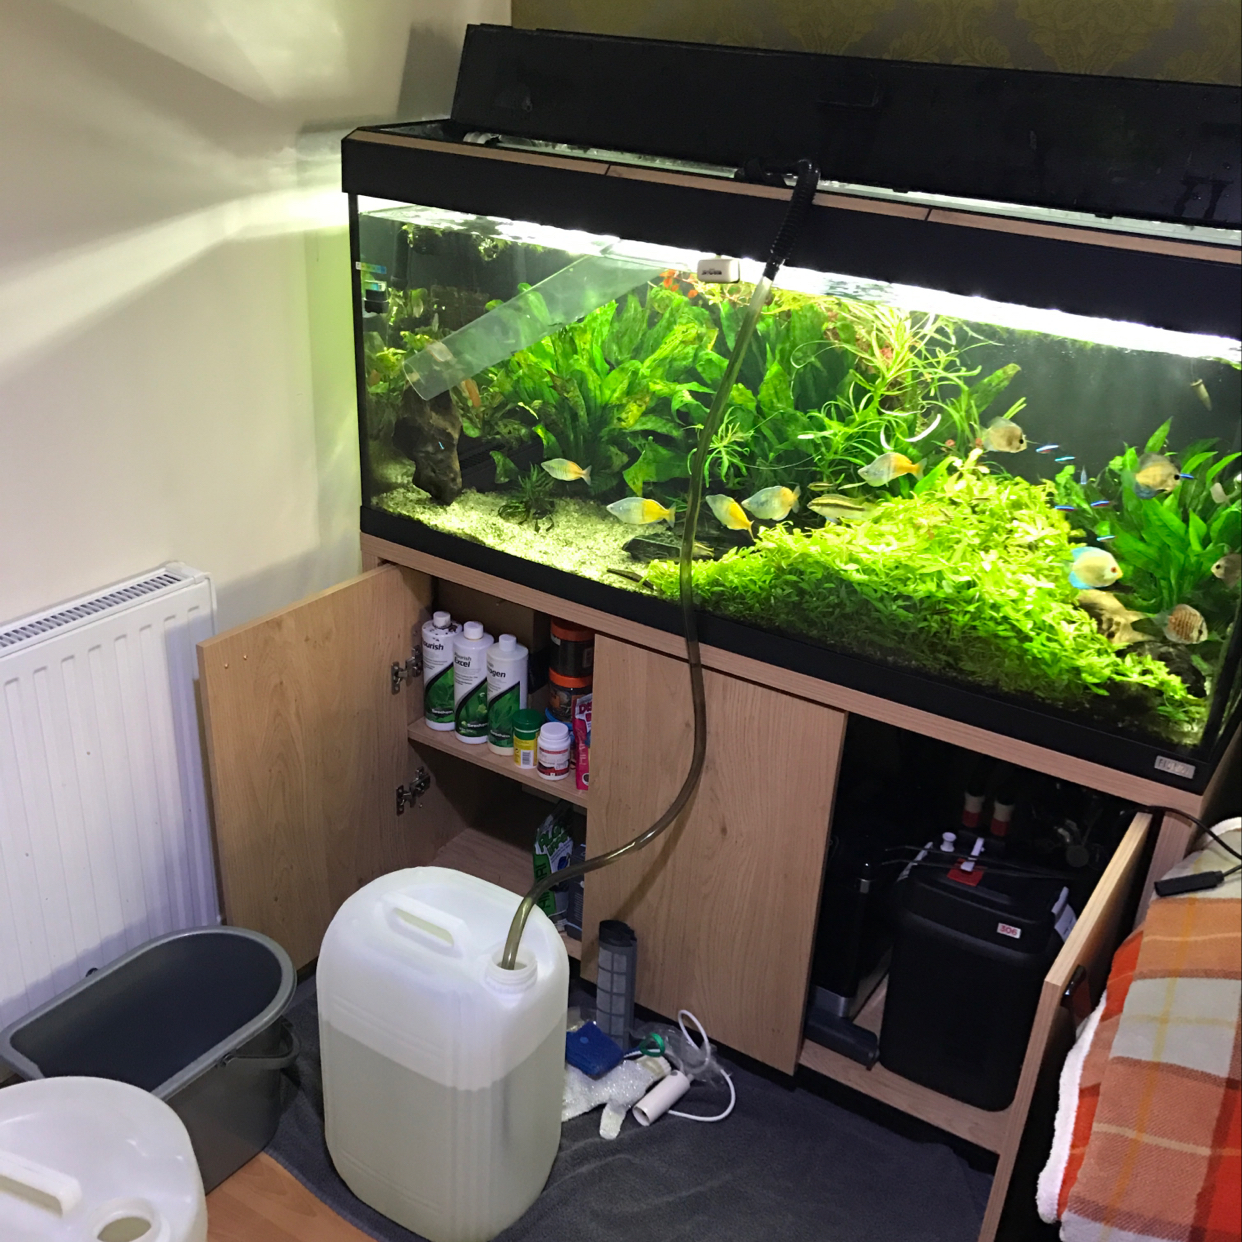 My Aquarium on Apr 8, 2017